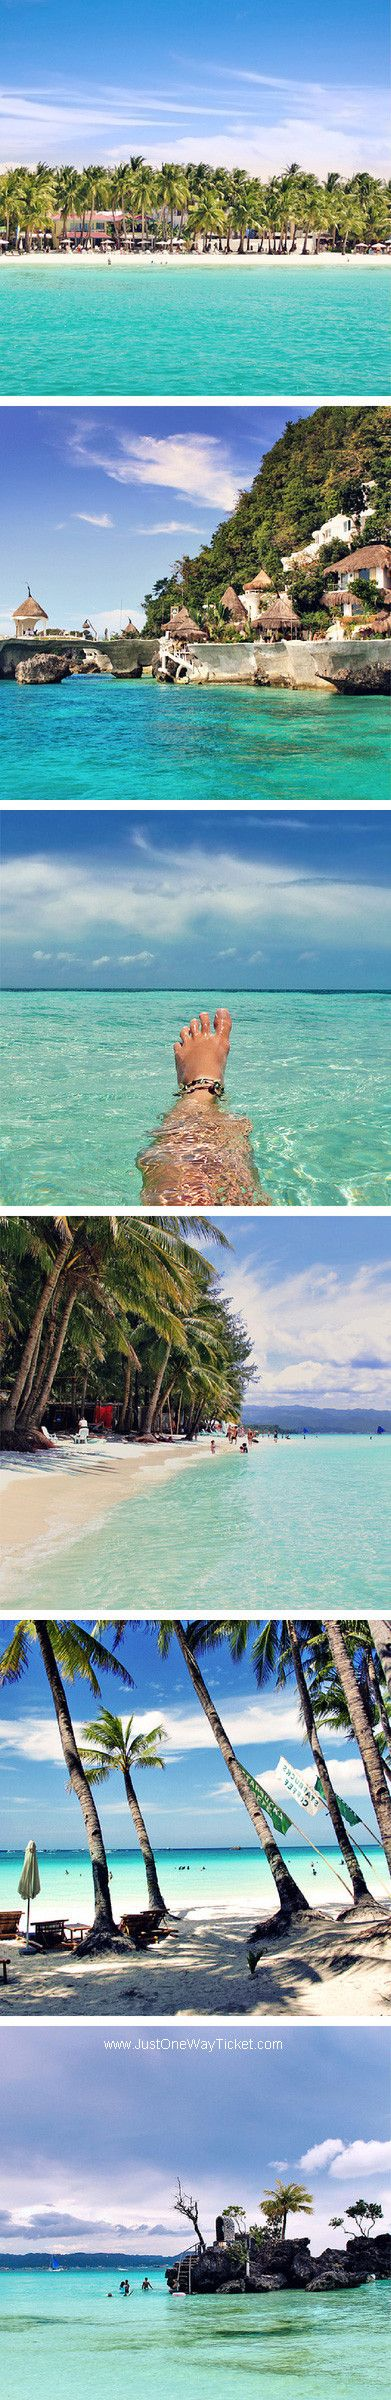 Boracay - Still A paradise? A Guide to Philippines' Most Visited Island - @Just1WayTicket